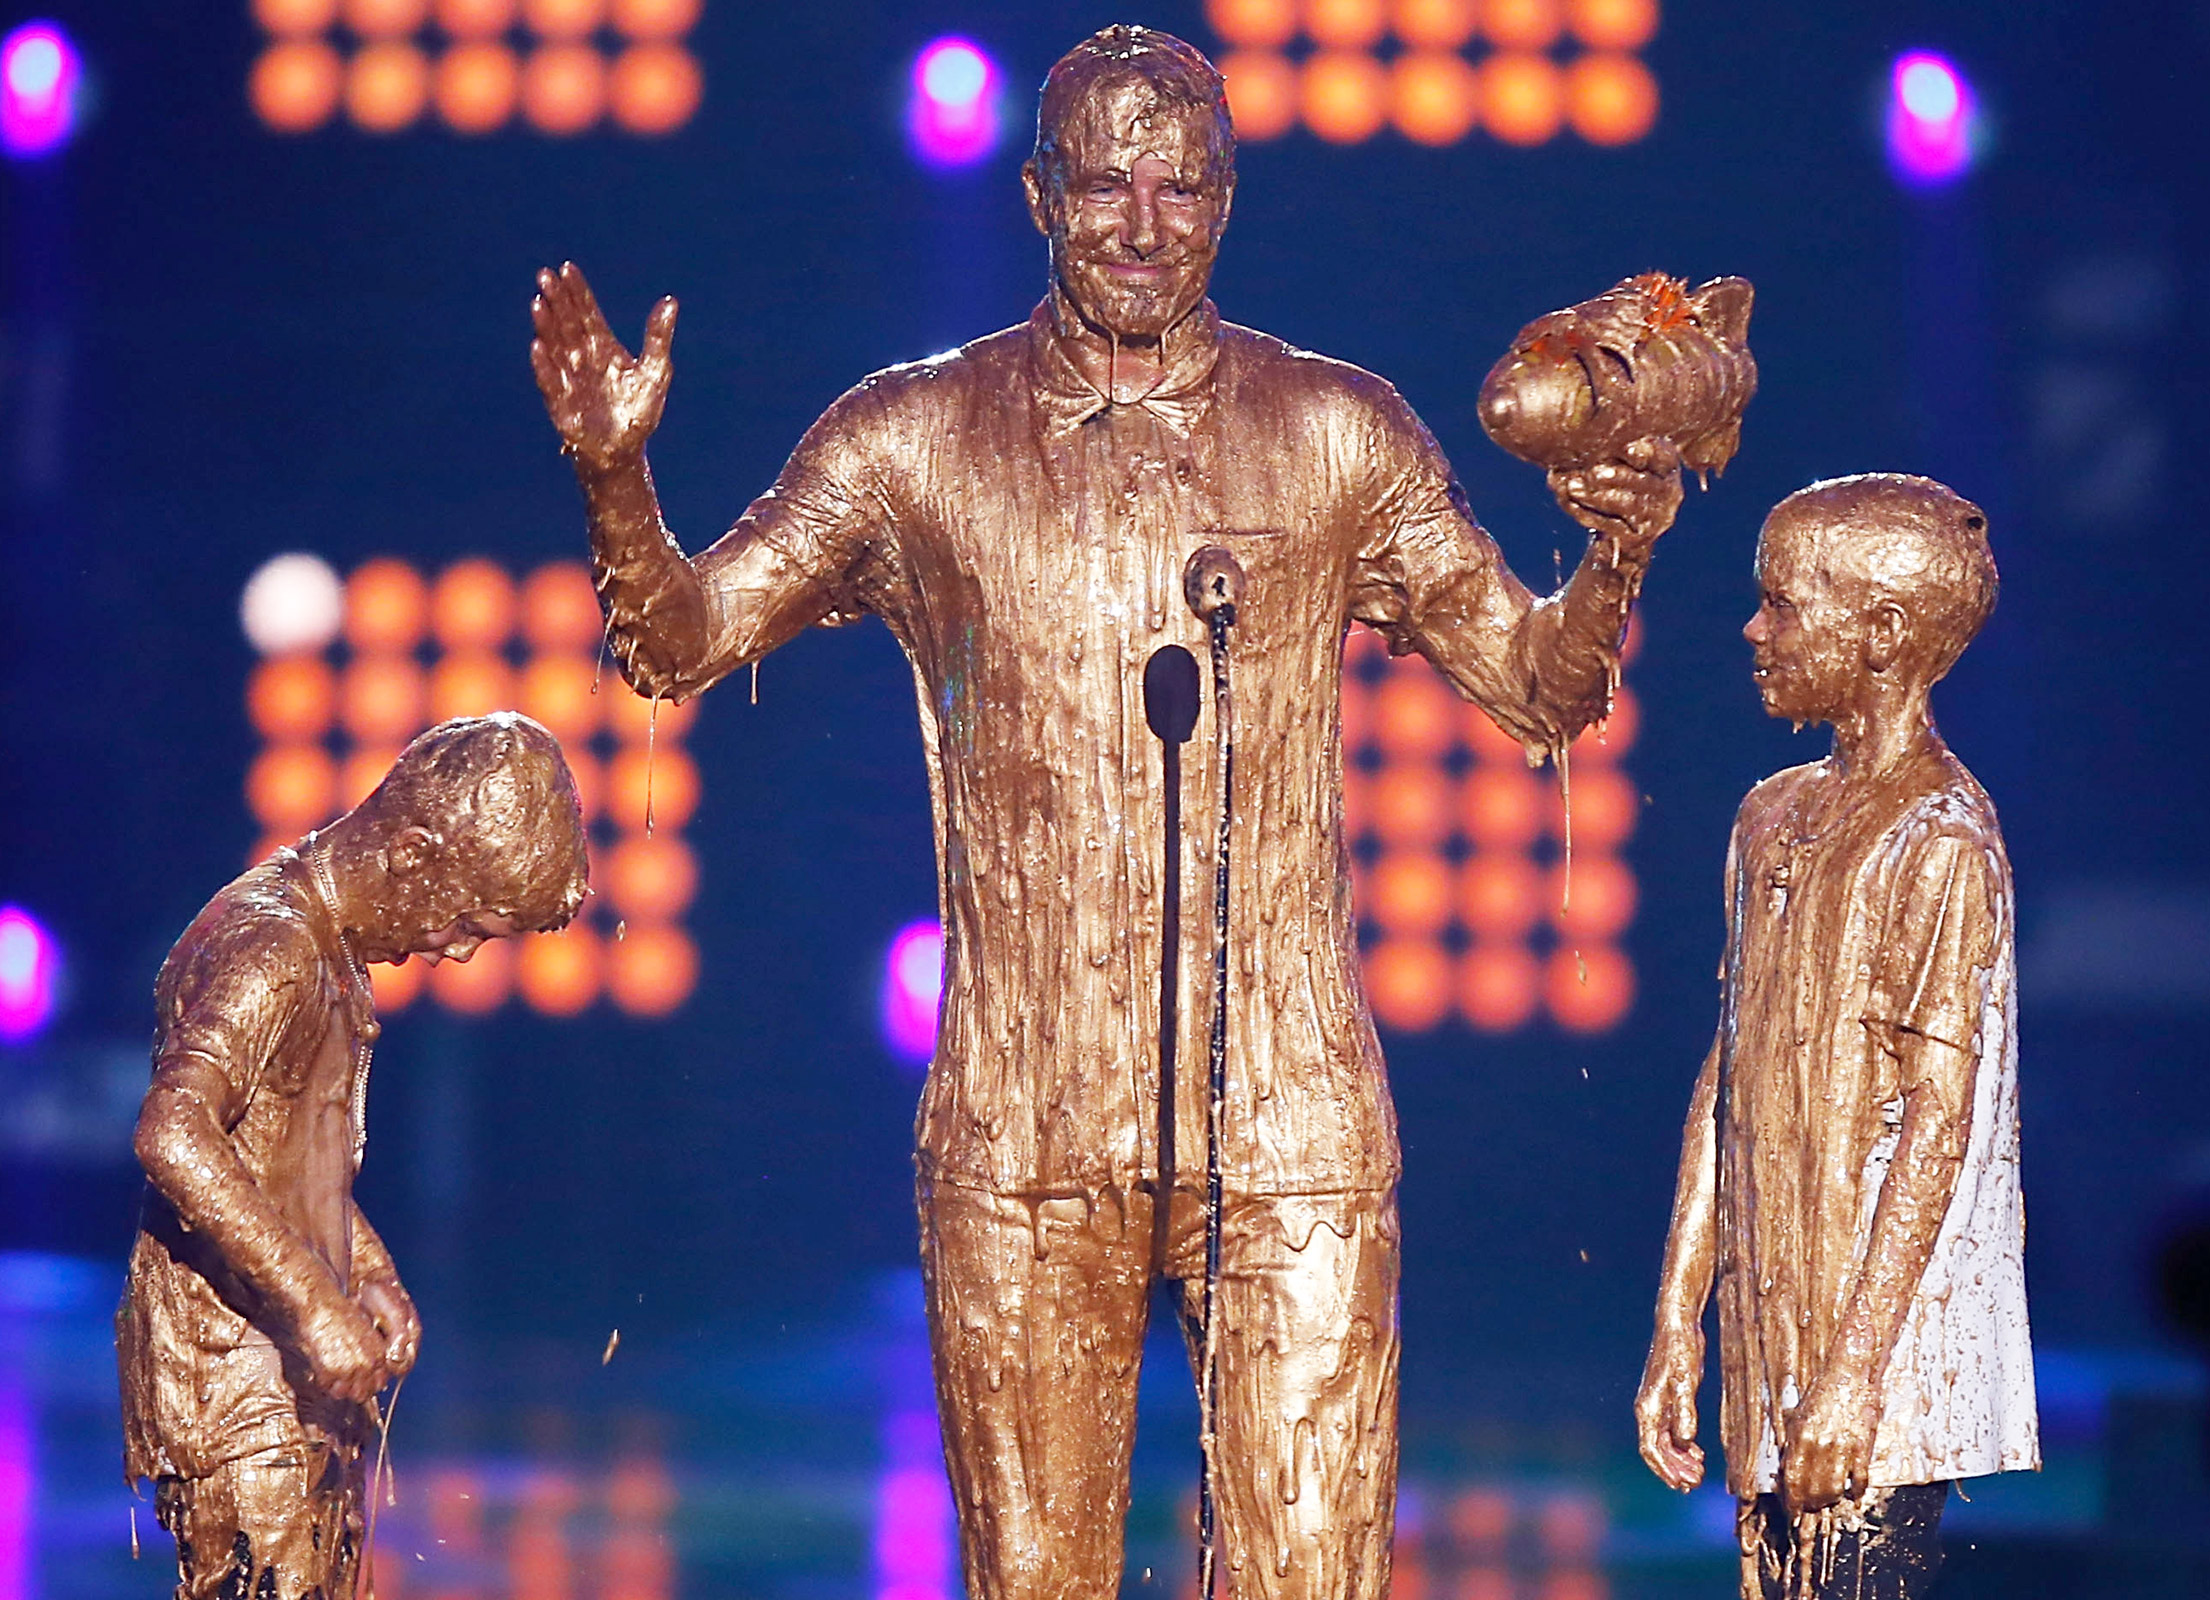 From posh to splosh! The former soccer pro received an award from his young sons Romeo and Cruz at the inaugural Nickelodeon Kids' Choice Sports Awards in L.A., but the Beckham family's special moment was cut short when they unexpectedly got smothered onstage by golden slime.